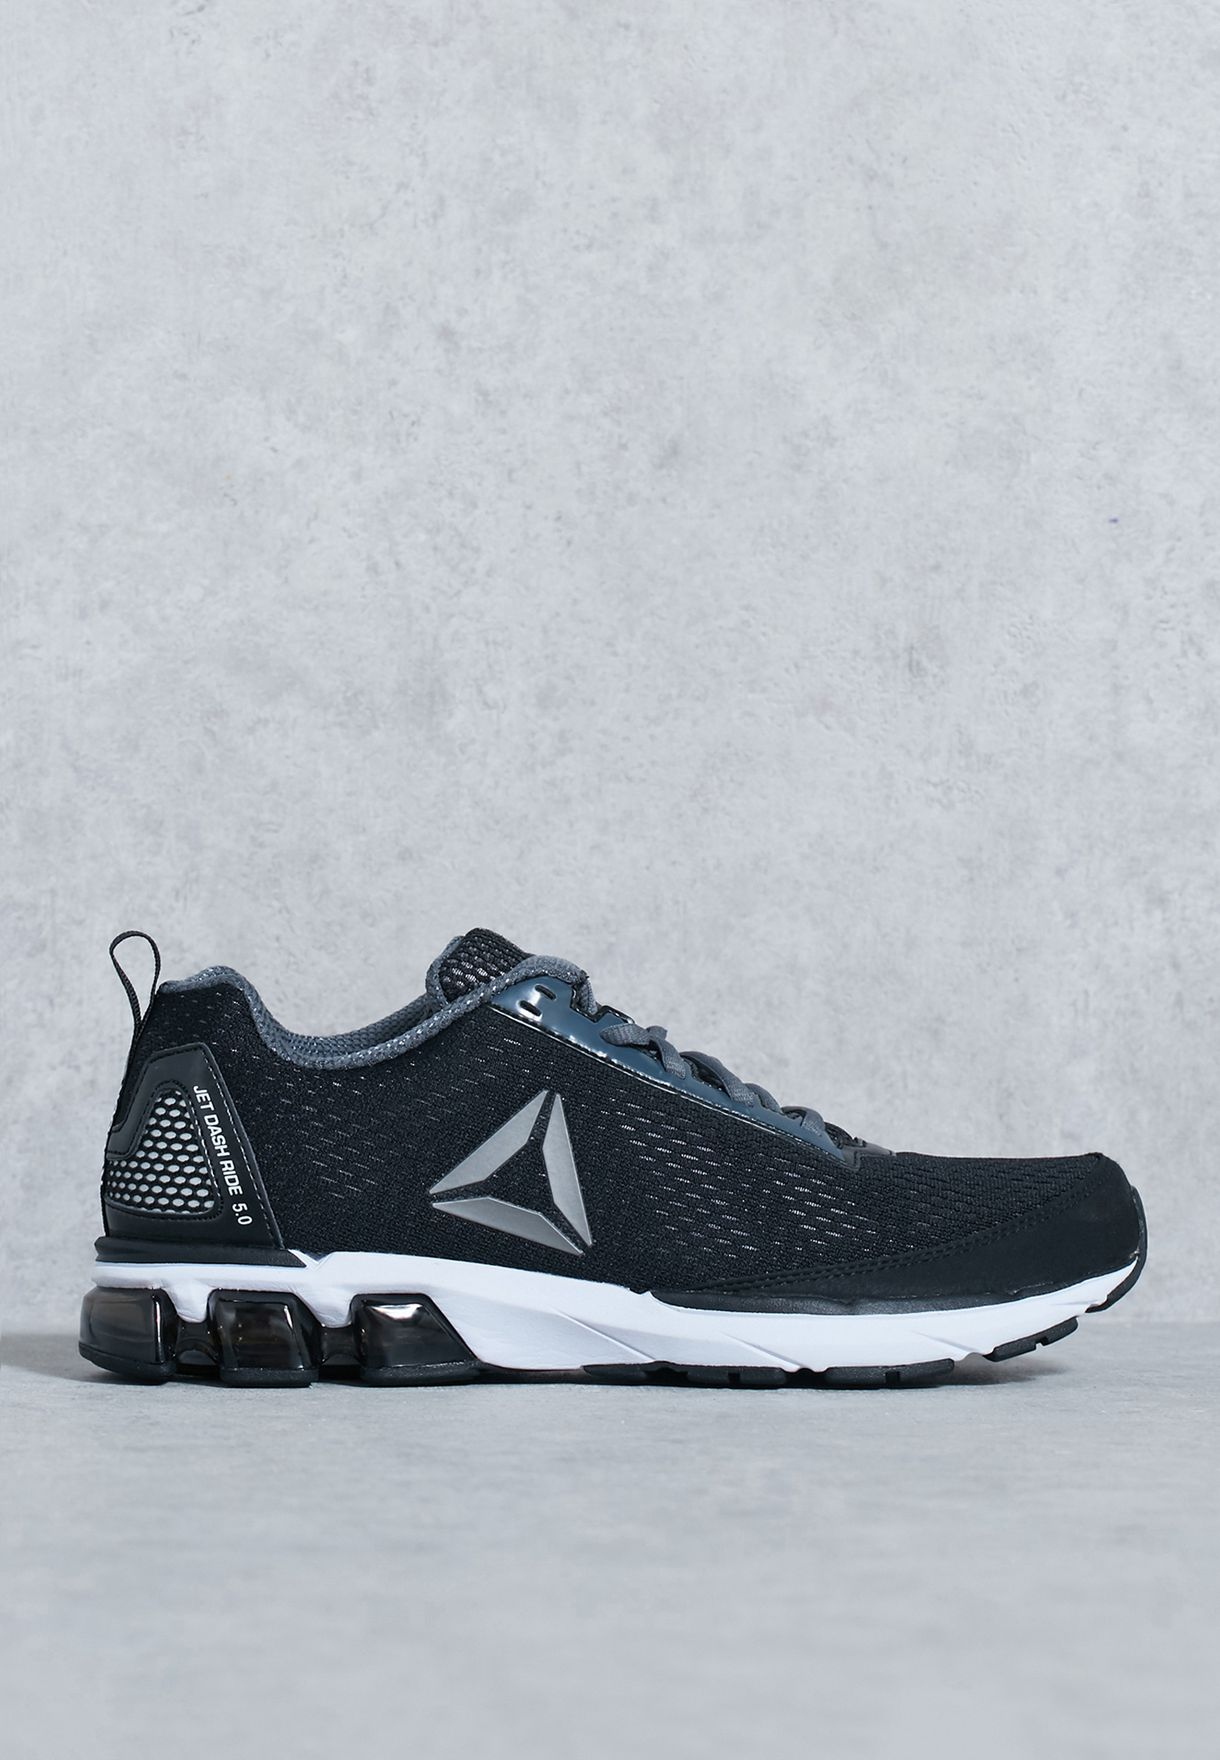 70aefb26a0e Shop Reebok black Jet Dashride 5.0 BS6526 for Men in Kuwait - RE019SH51ORC